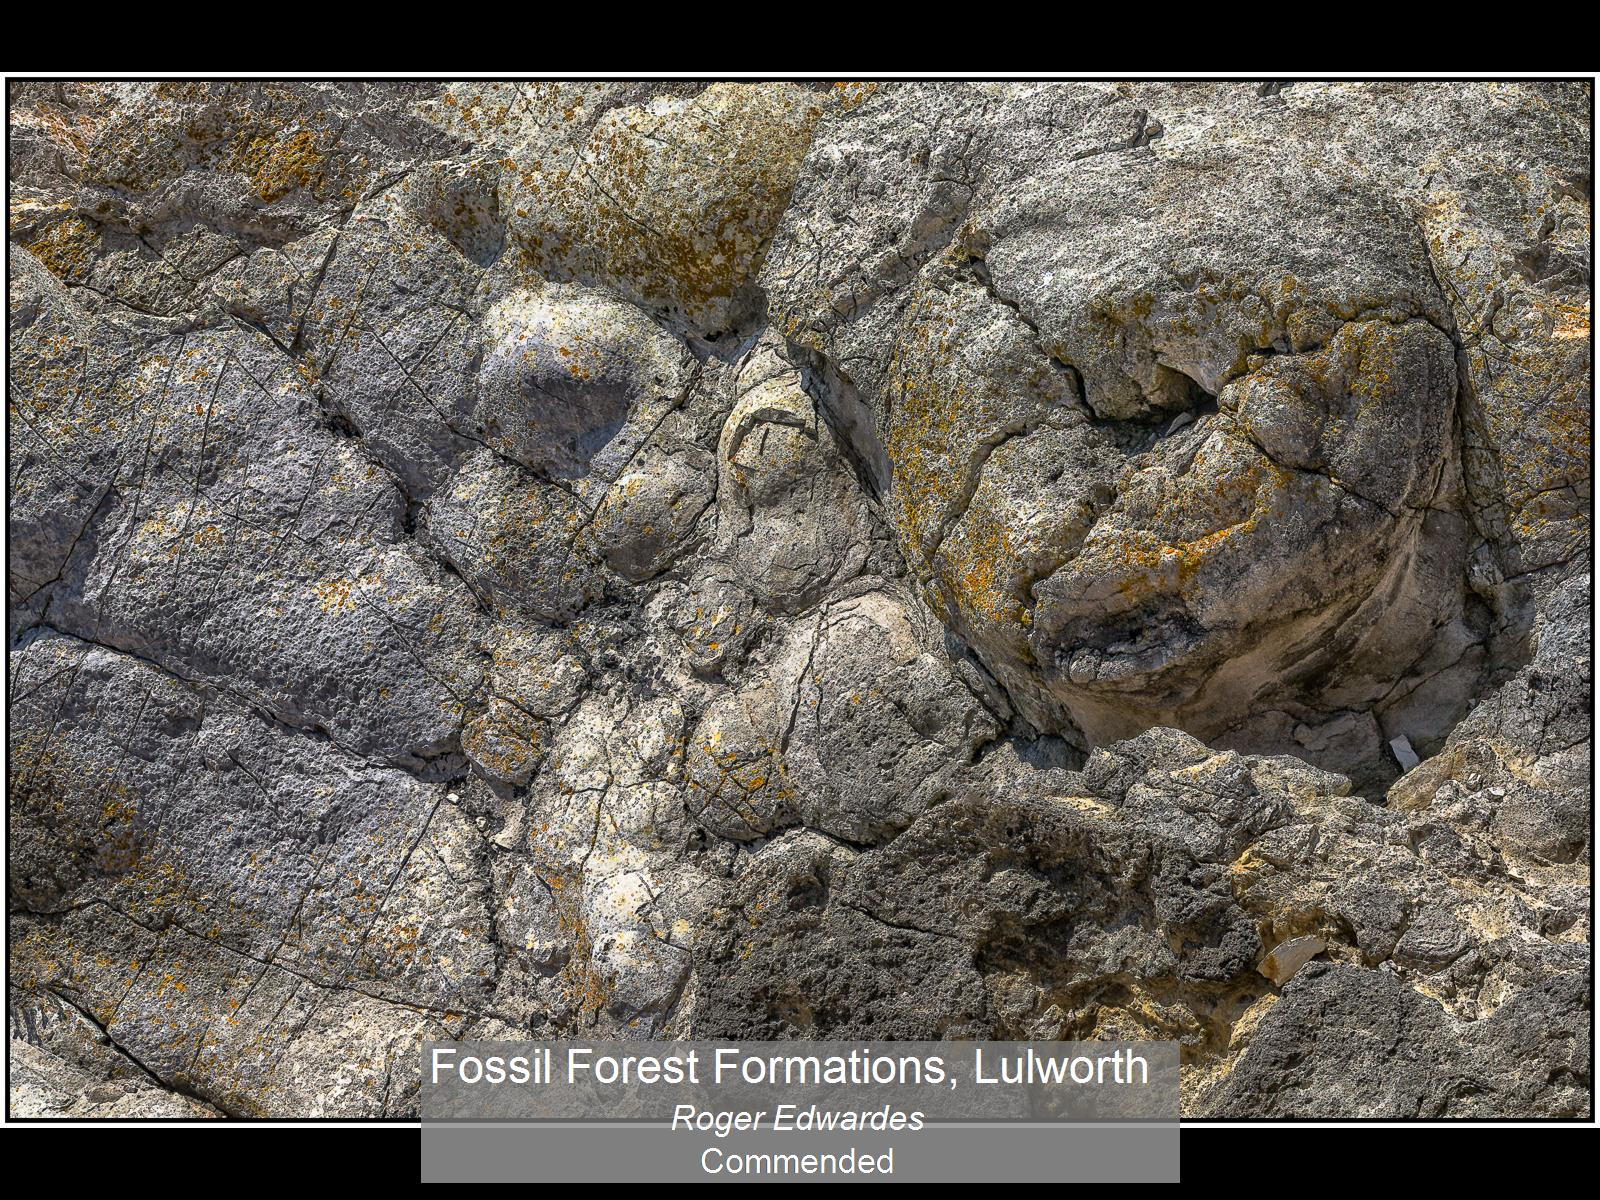 Comm_Fossil Forest Formations, Lulworth_Roger Edwardes